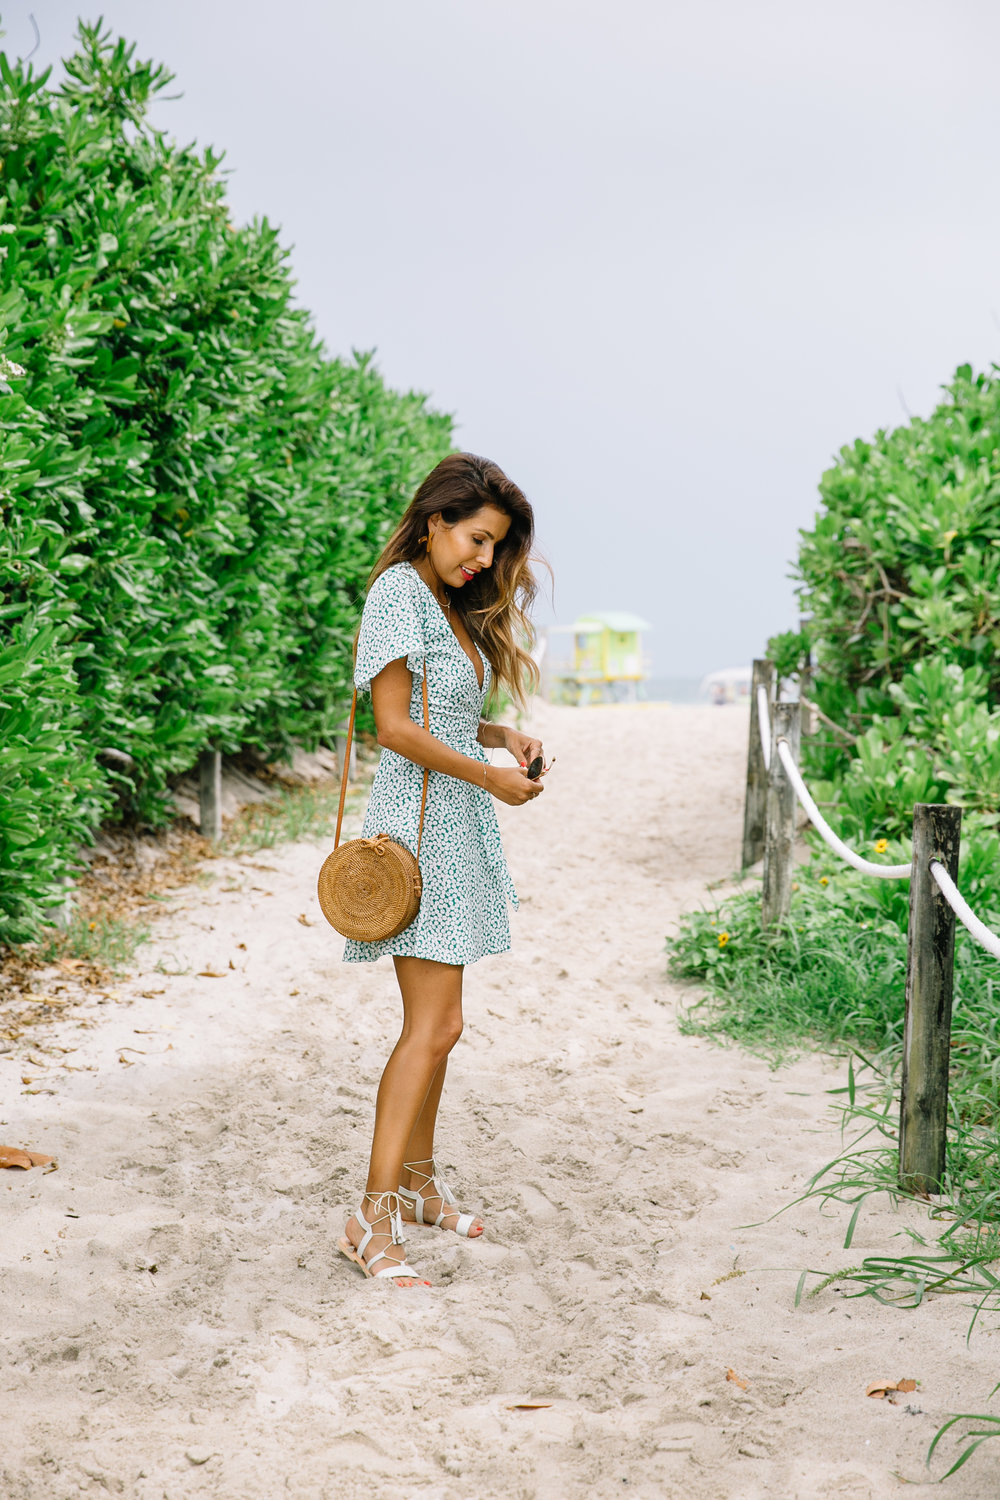 Endless Summer Wrap Dress on Ashley of Everyday Pursuits - Miami Travel Guide